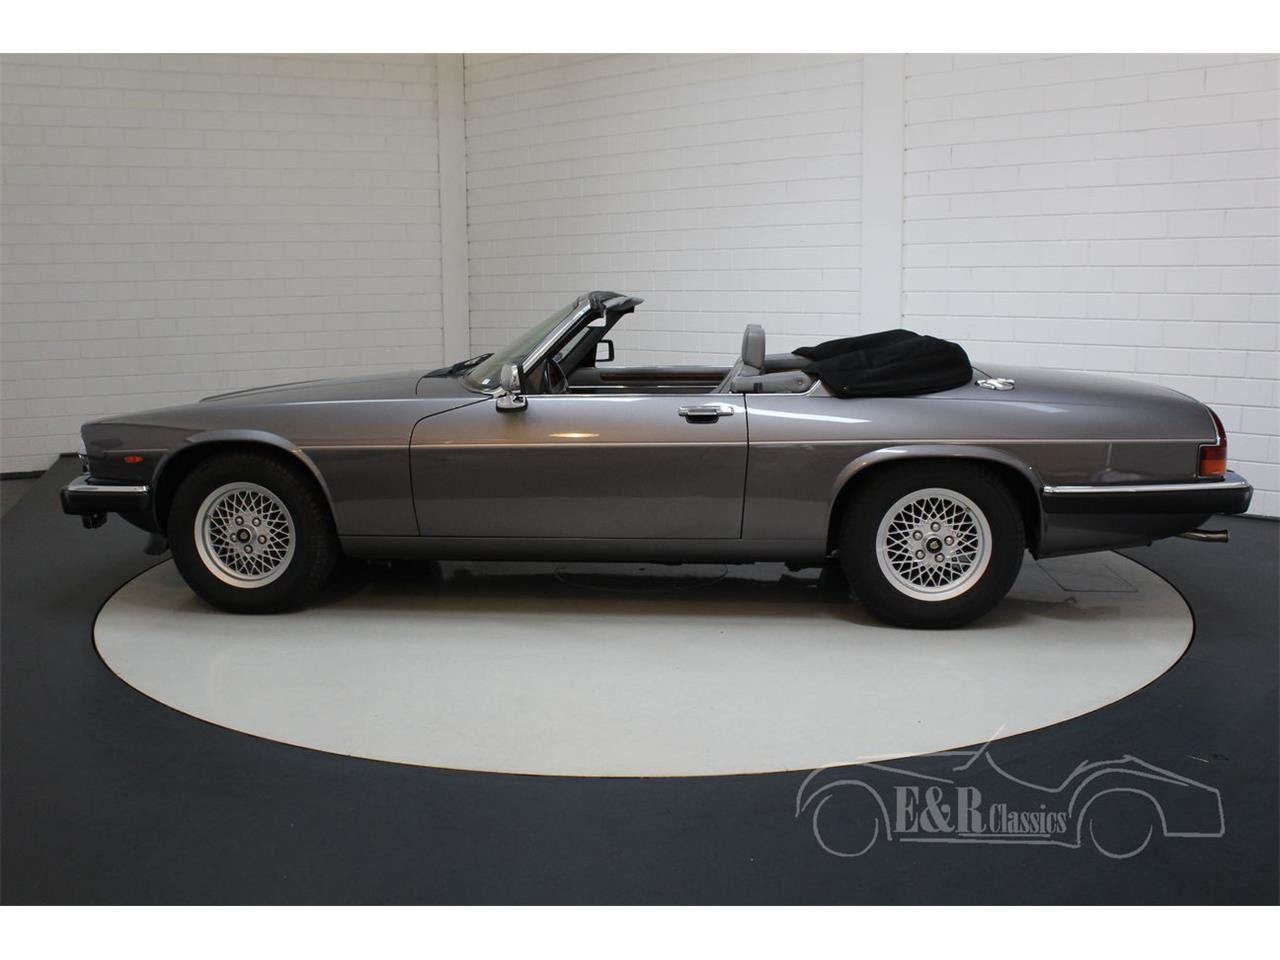 Large Picture of '91 Jaguar XJS located in Waalwijk noord brabant - $39,050.00 Offered by E & R Classics - QQJ7